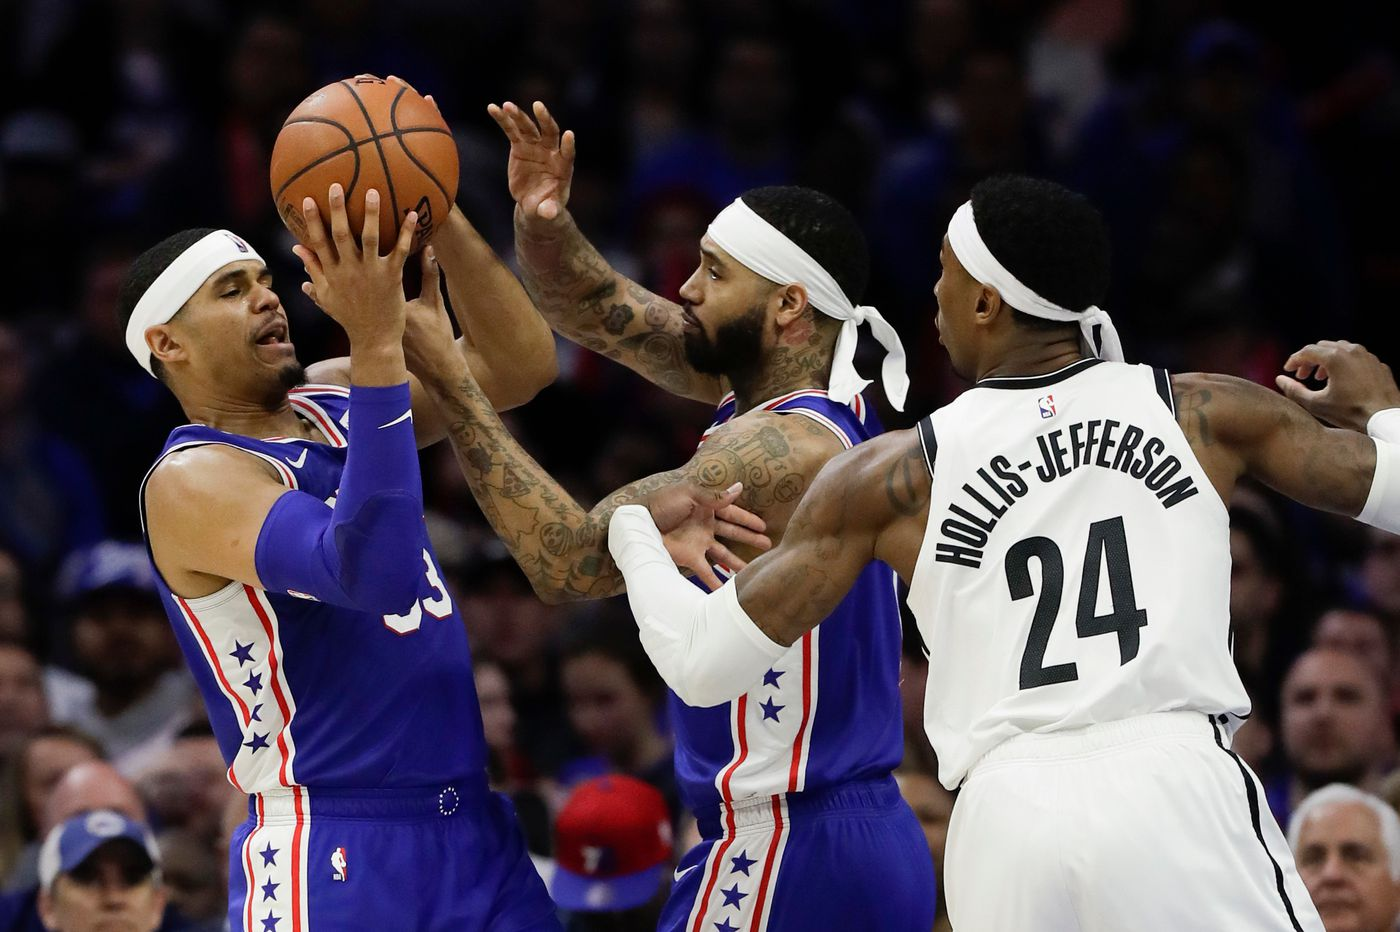 NBA playoffs: After historic win, Sixers say they won't be complacent in Game 3 vs. Nets